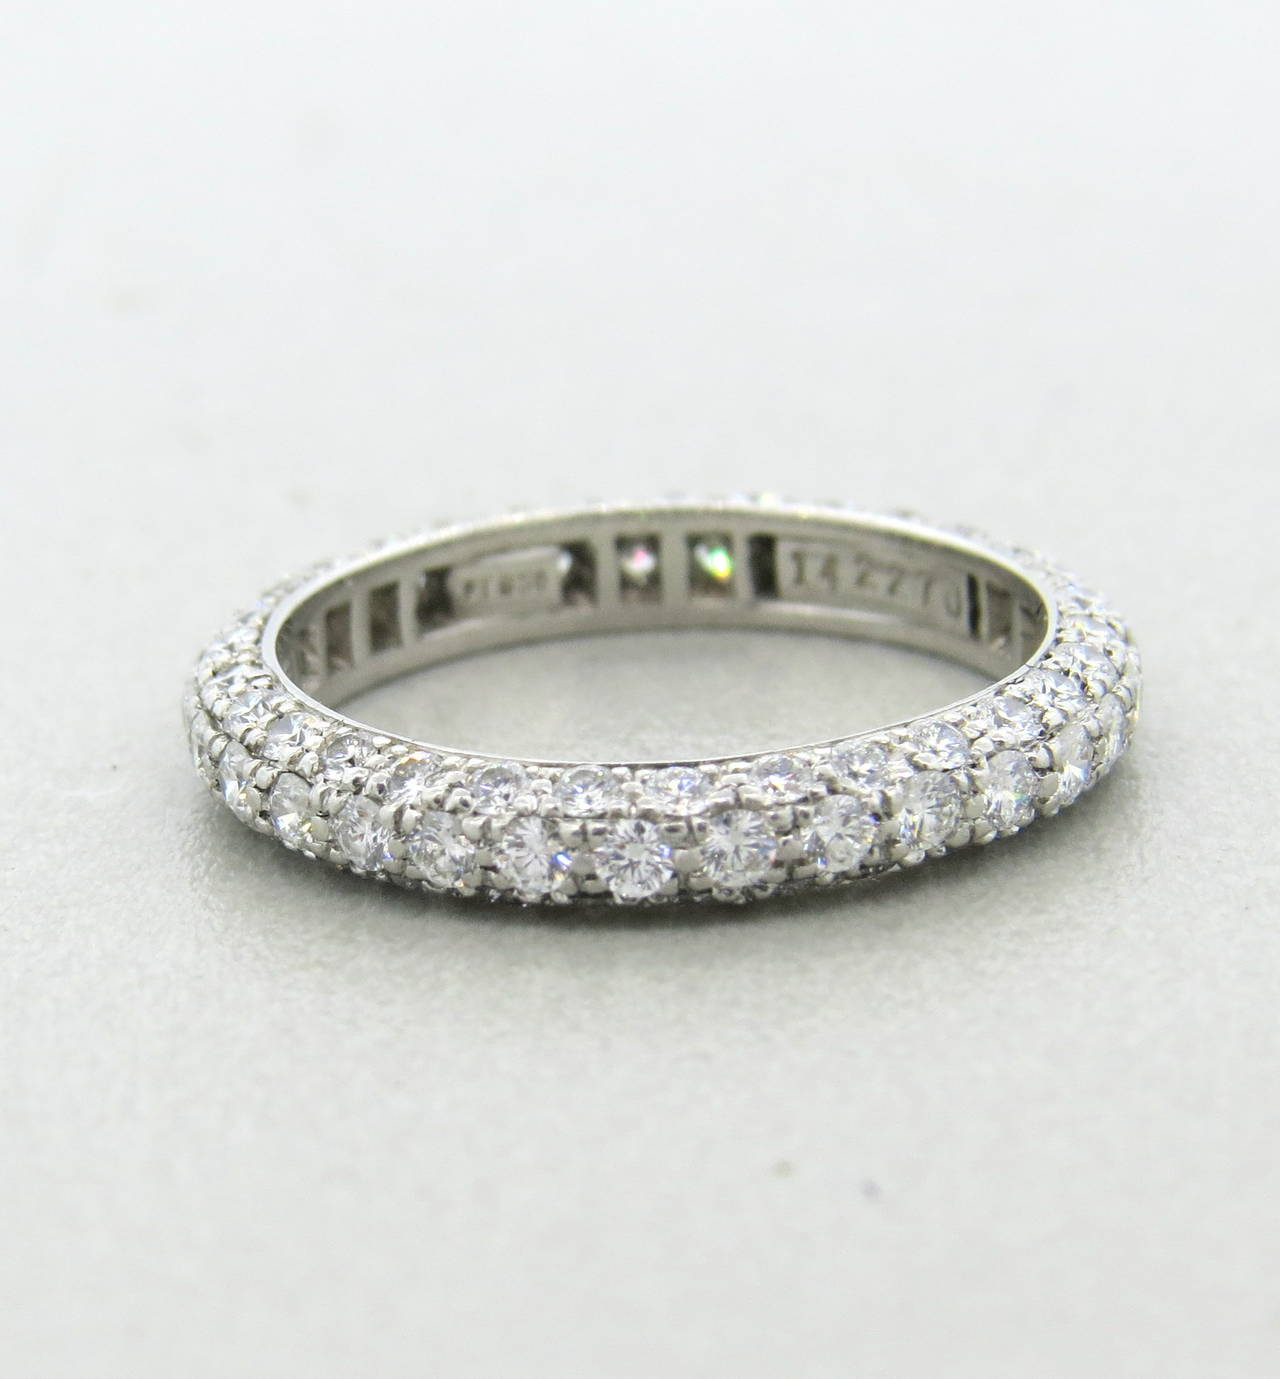 harry winston diamond platinum wedding band ring at 1stdibs - Harry Winston Wedding Rings